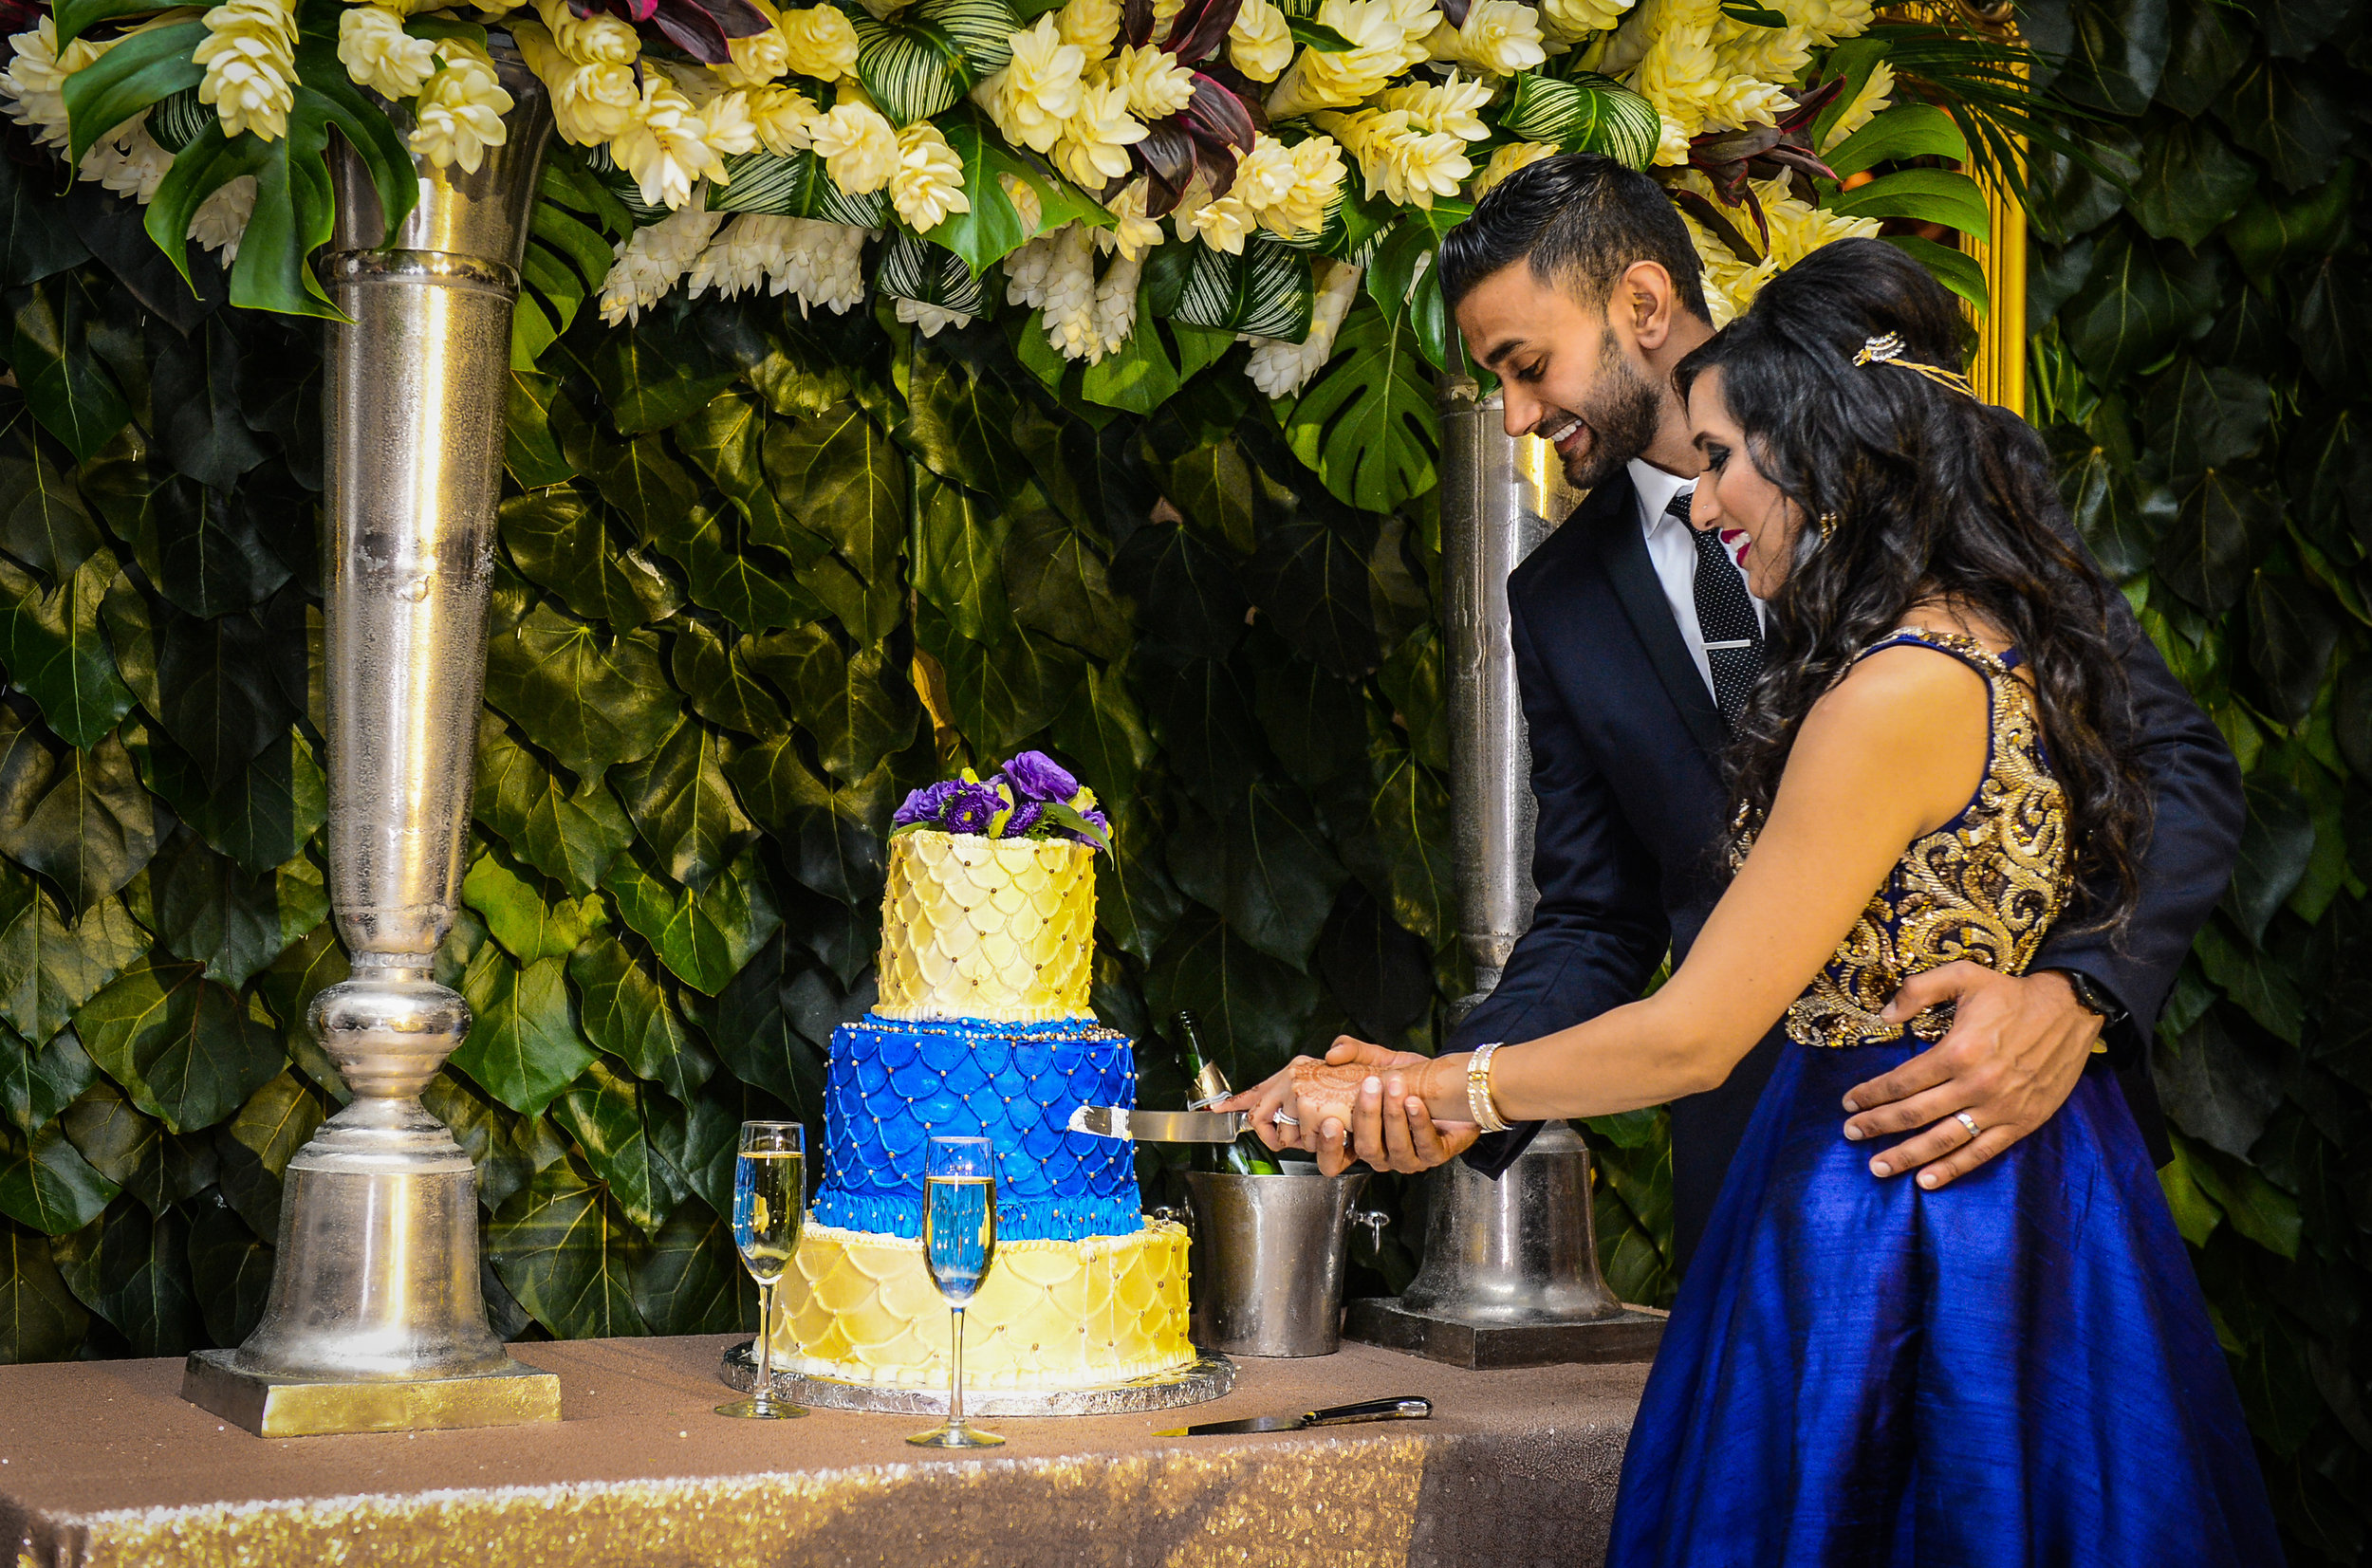 costa-rica-weddings-roshni-jignesh-35.jpg